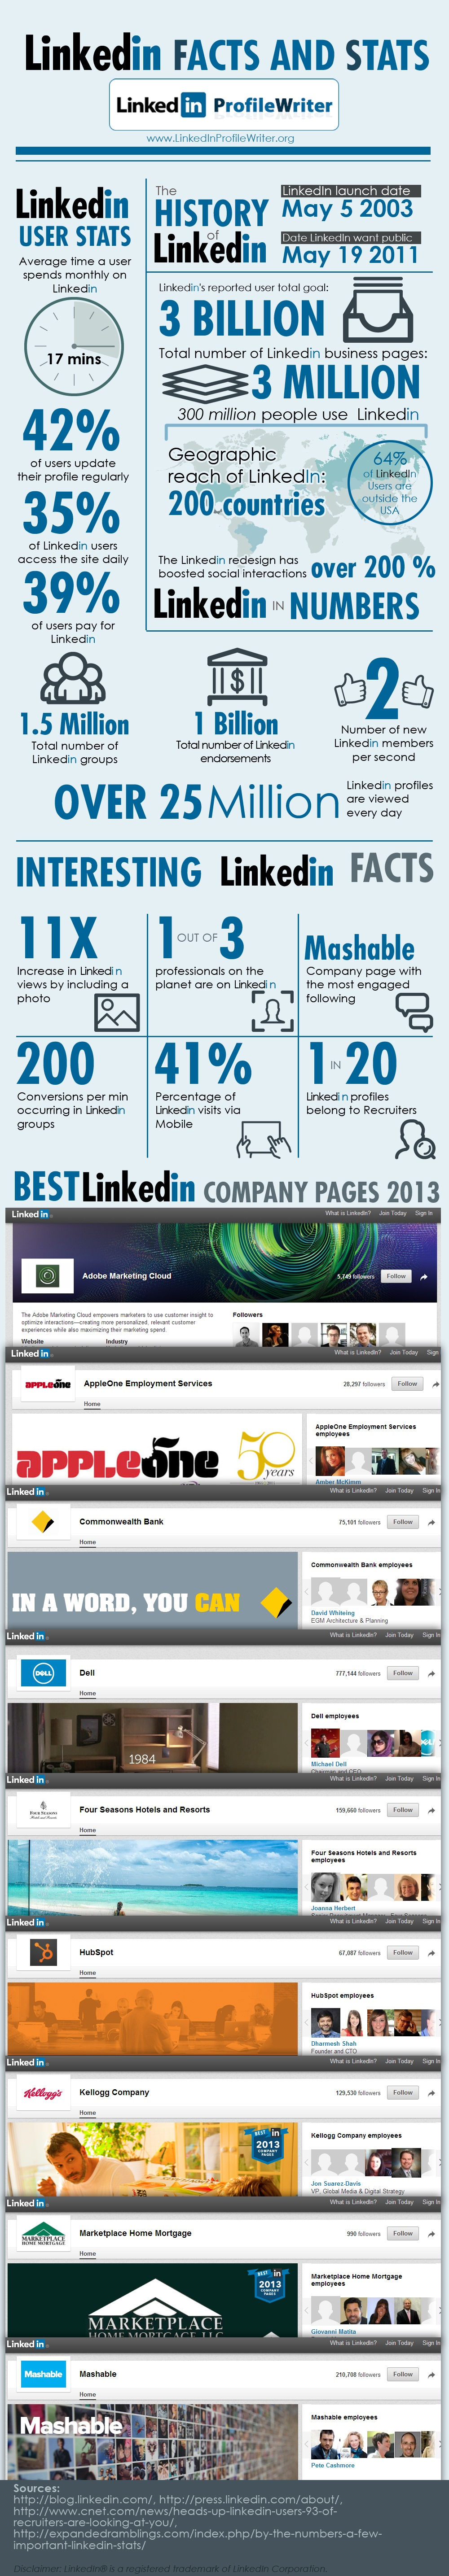 wersm_linkedin_infographic_stats_facts